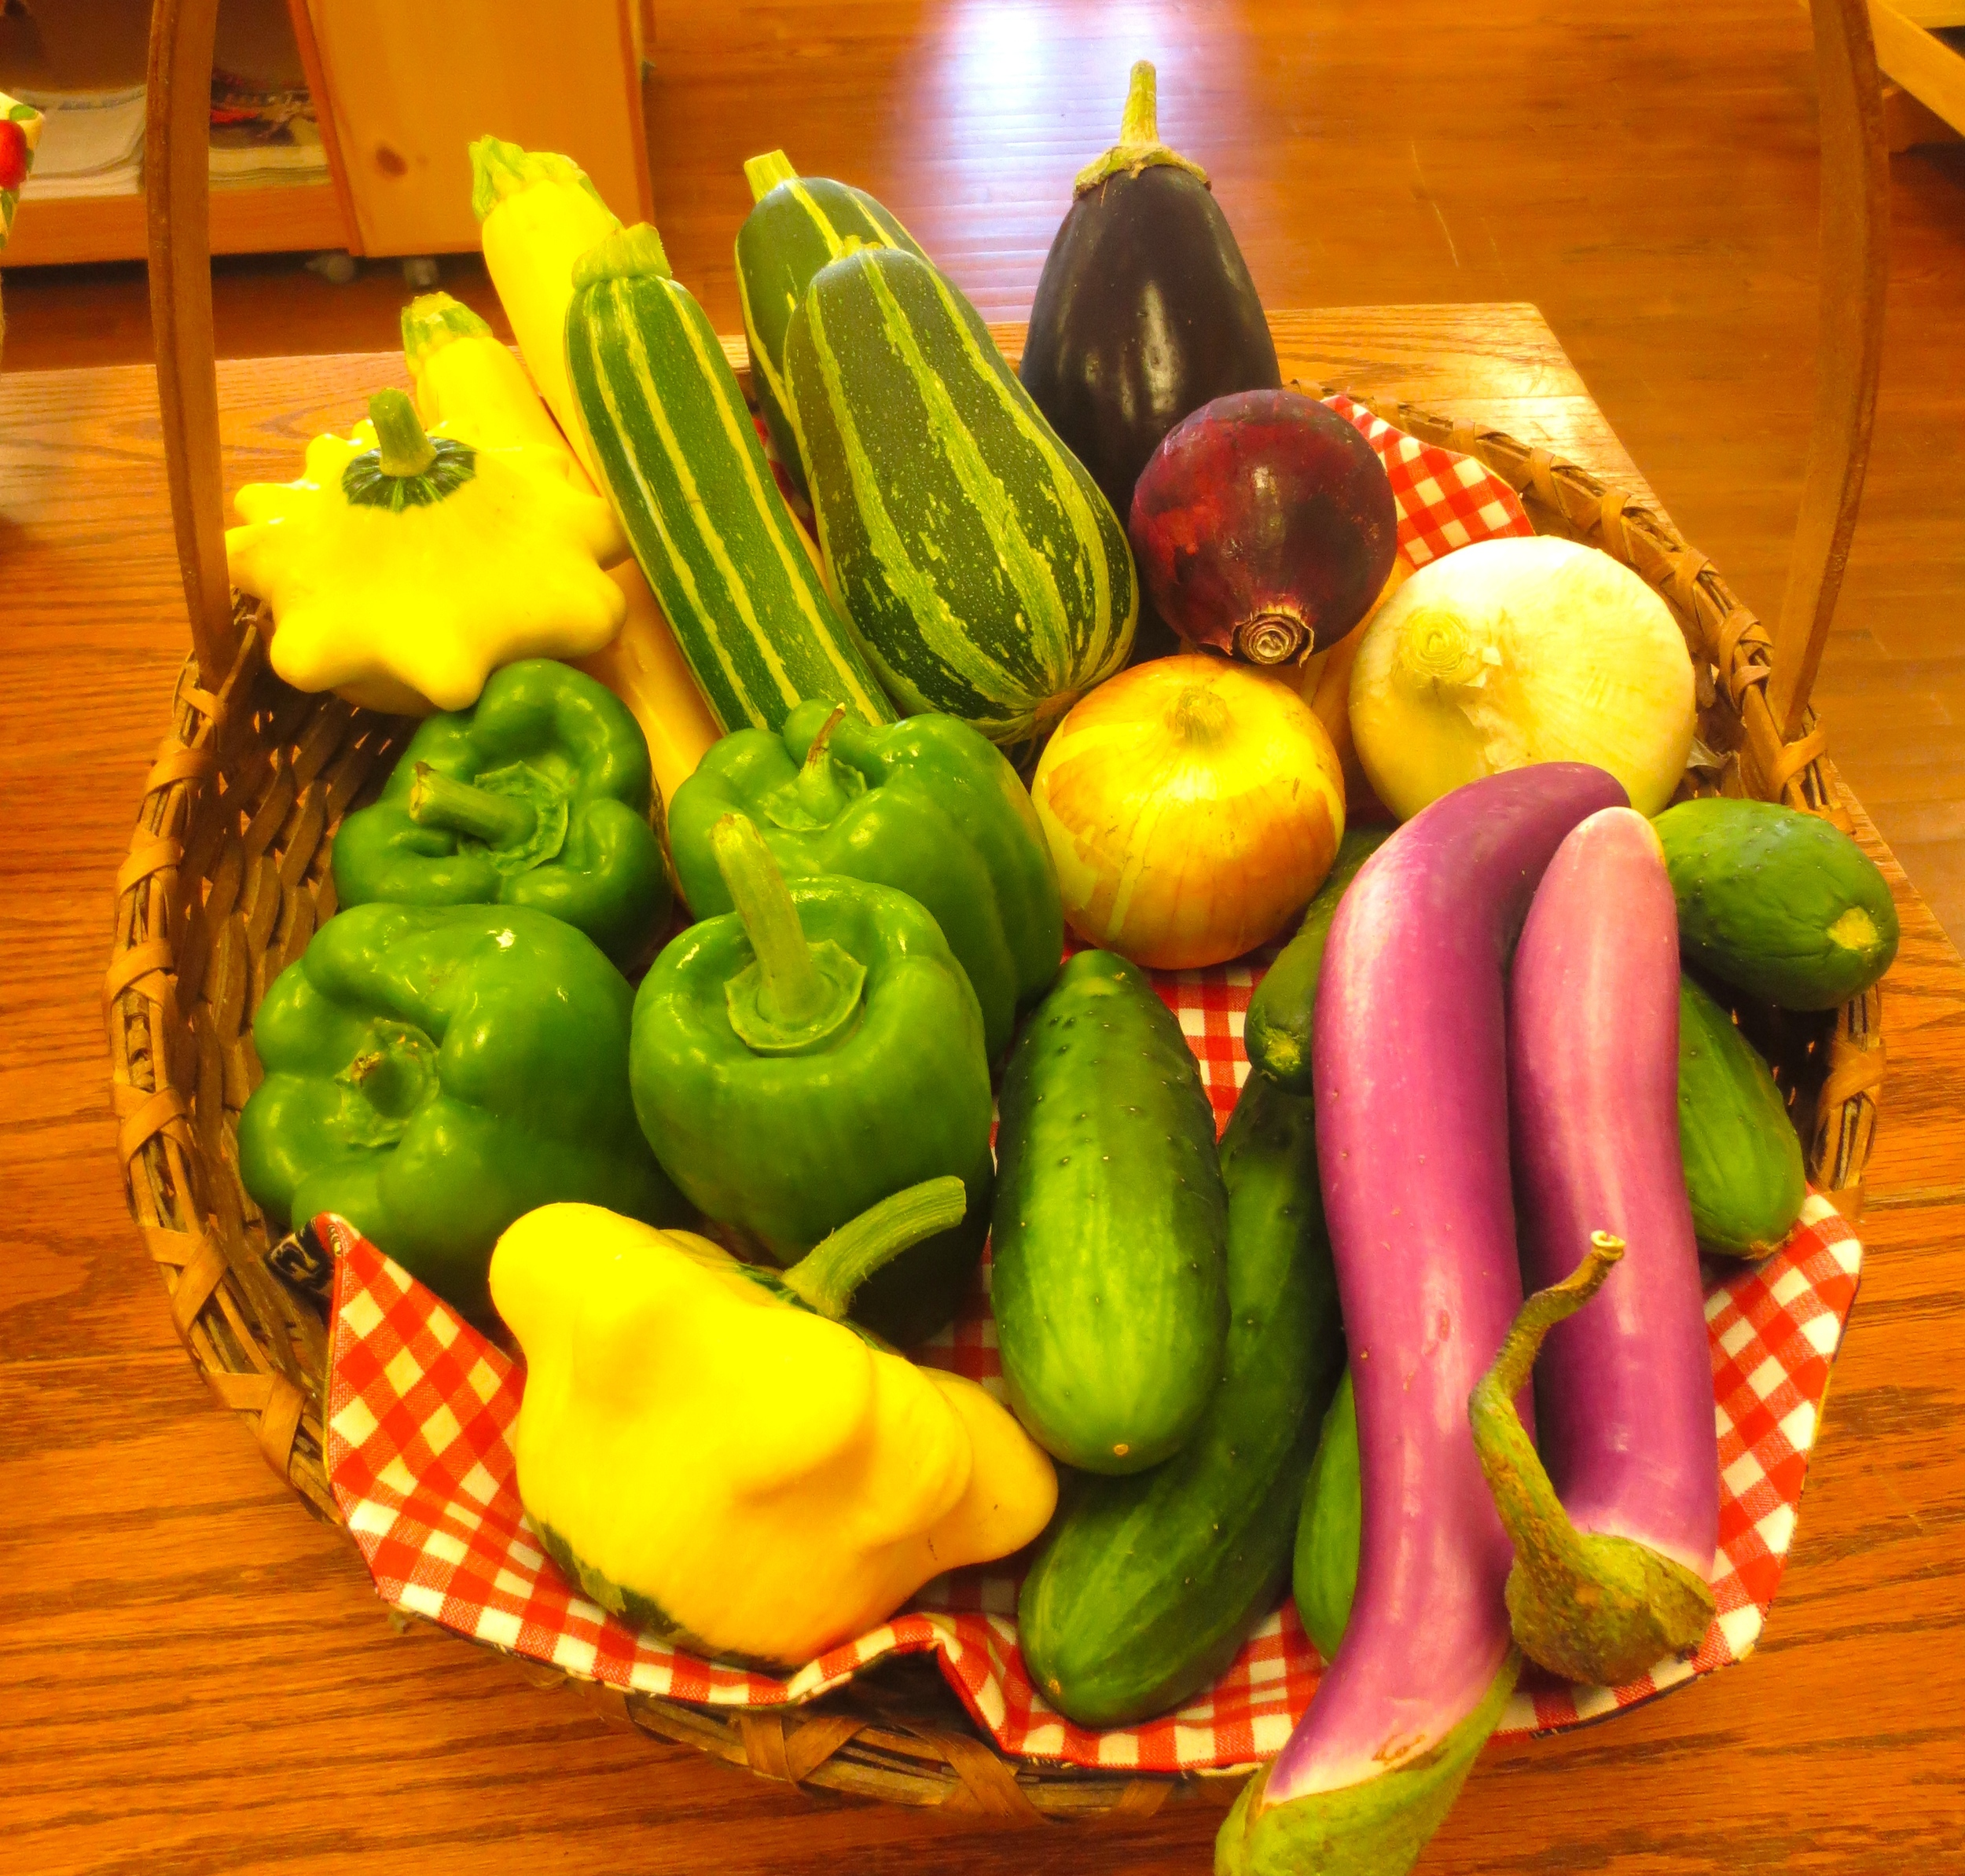 Make Lunches Fresh by Using Locally Grown Produce